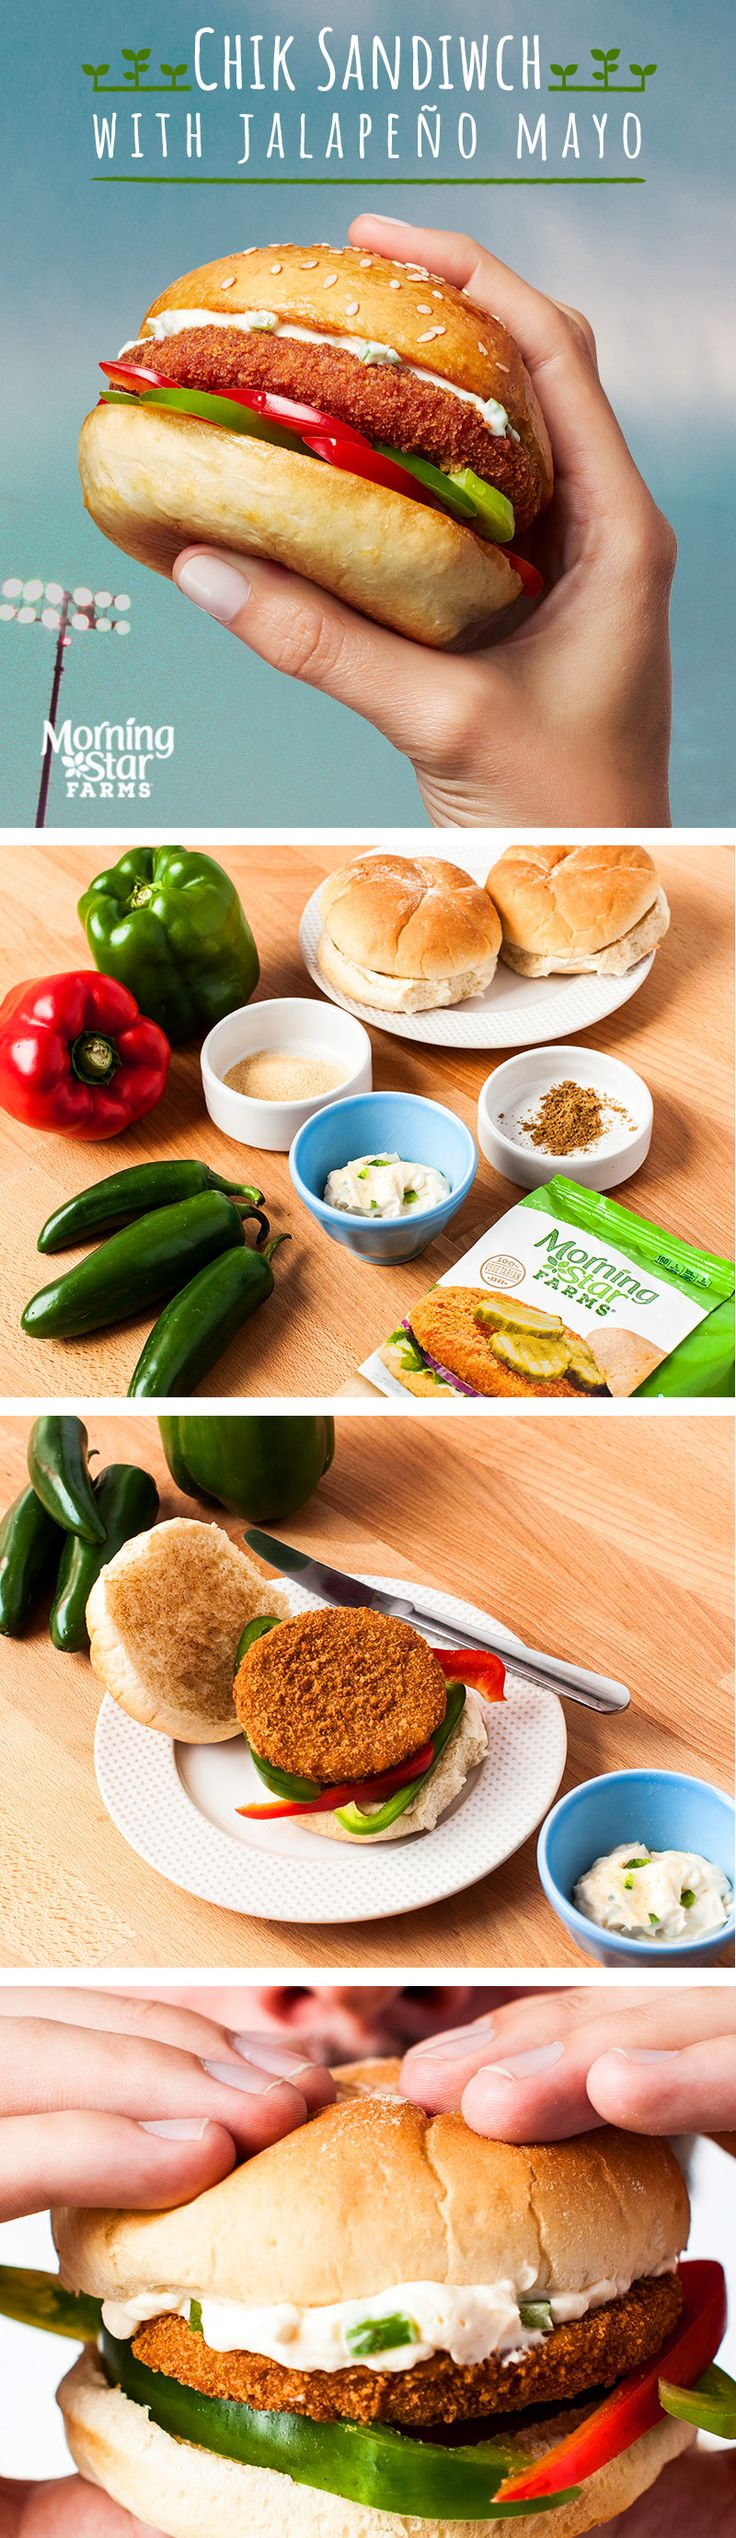 Give your Chik Sandwich the condiment it deserves with this easy Jalapeno Mayo recipe.